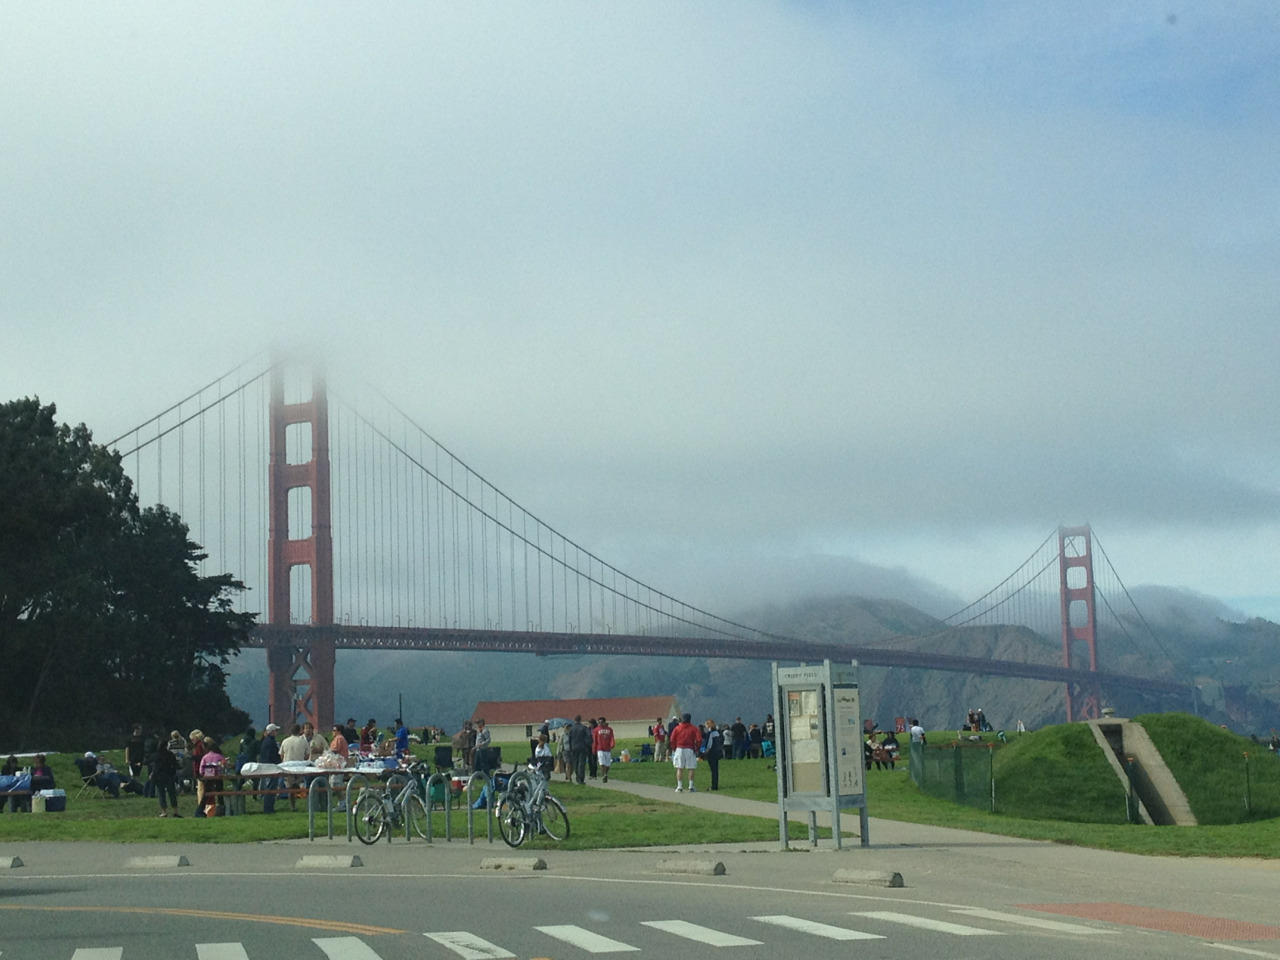 Beautiful day in Sf yesterday except Golden gate bridge was the only part of the city covered in so much fog.